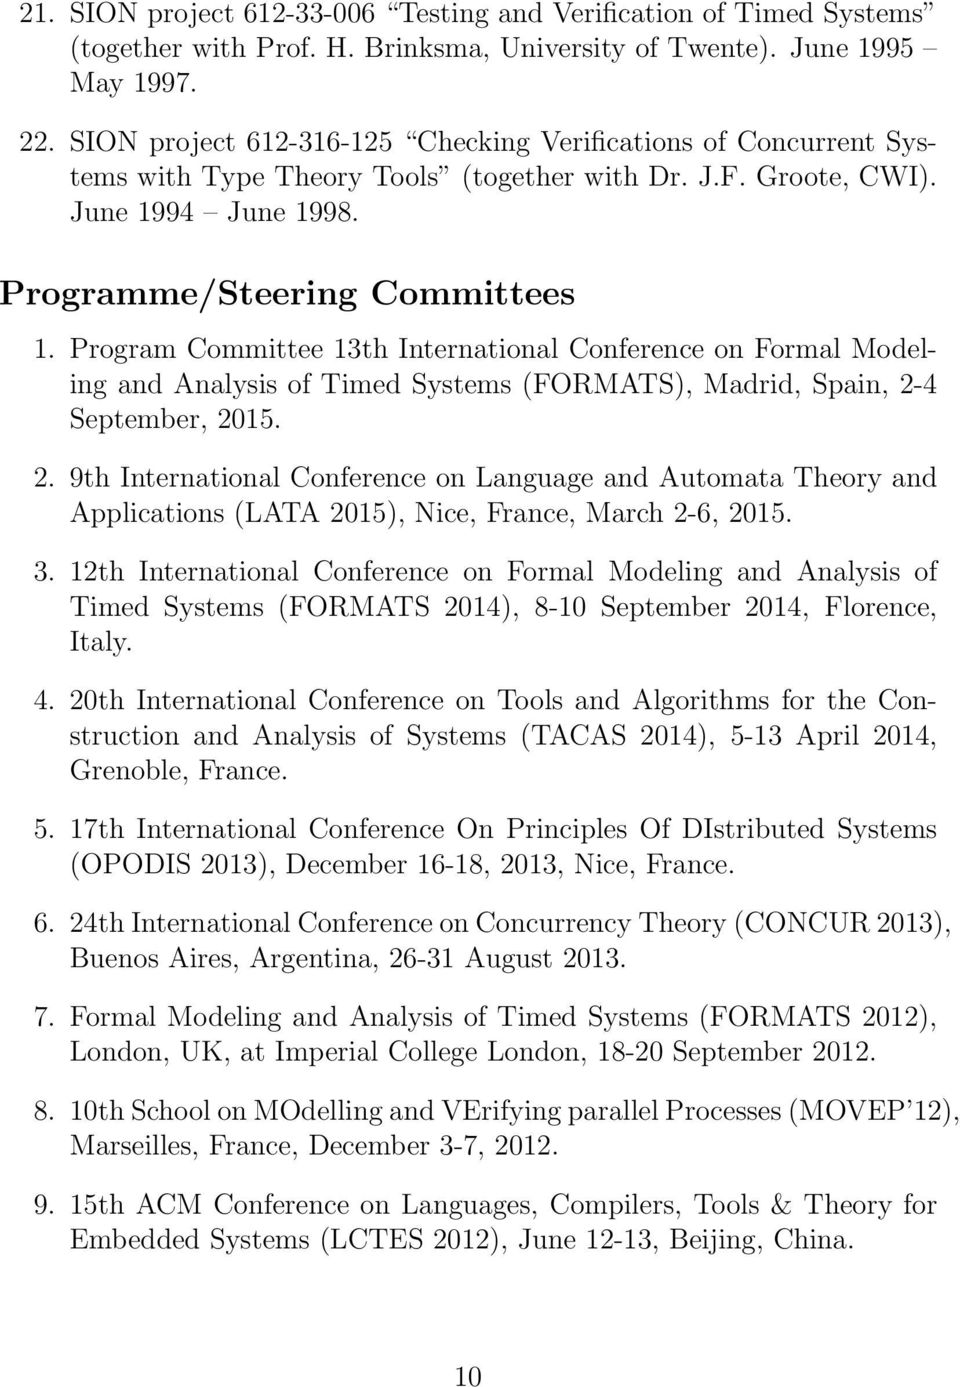 Program Committee 13th International Conference on Formal Modeling and Analysis of Timed Systems (FORMATS), Madrid, Spain, 2-